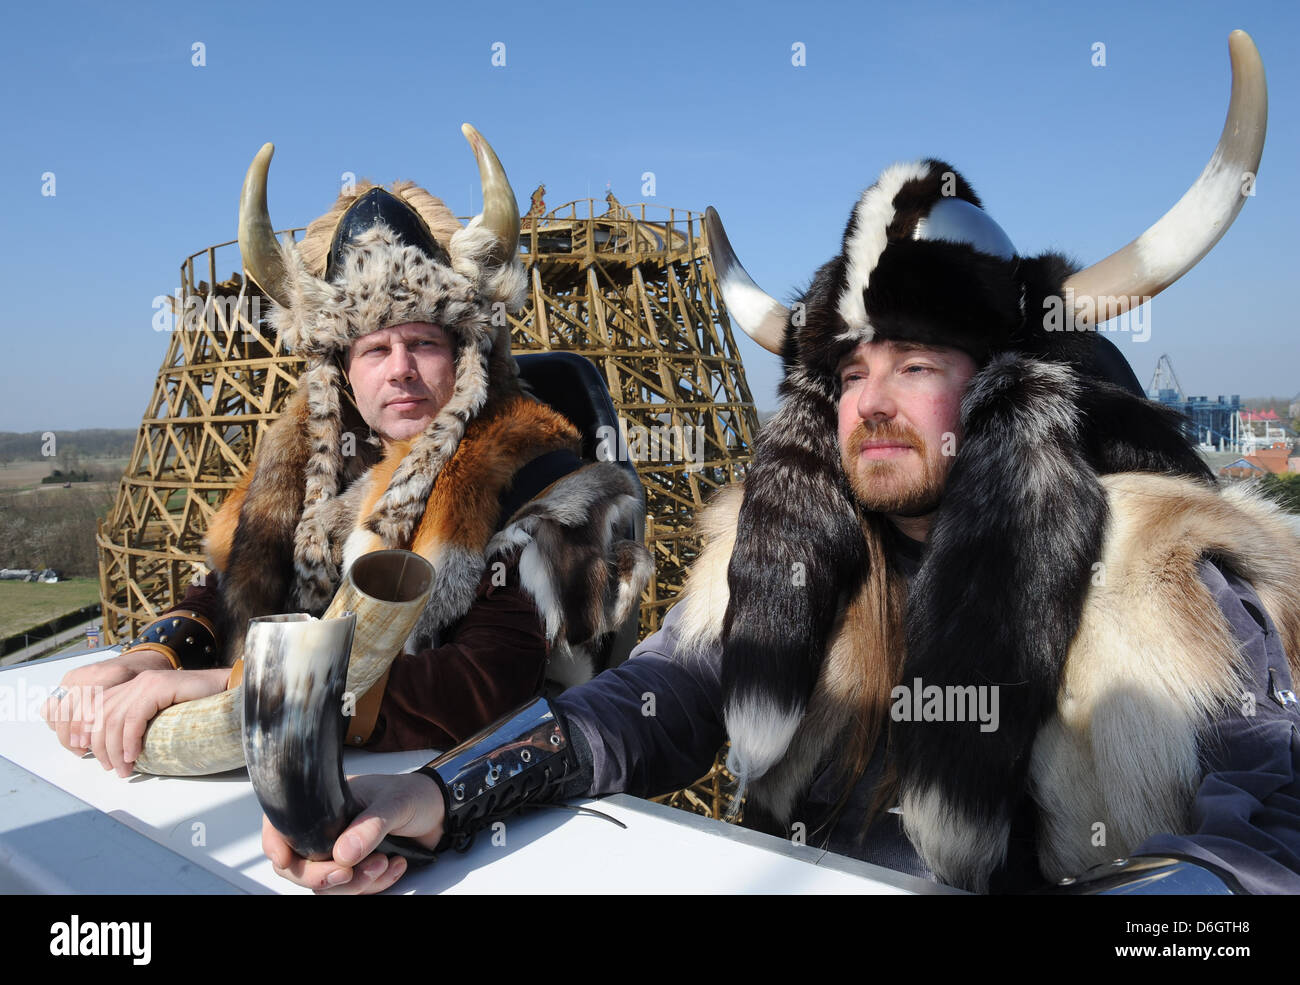 Rust, Germany, dressed visitors at the inauguration of the new wooden roller coaster Wodan, ÄìTimburcoaster - Stock Image